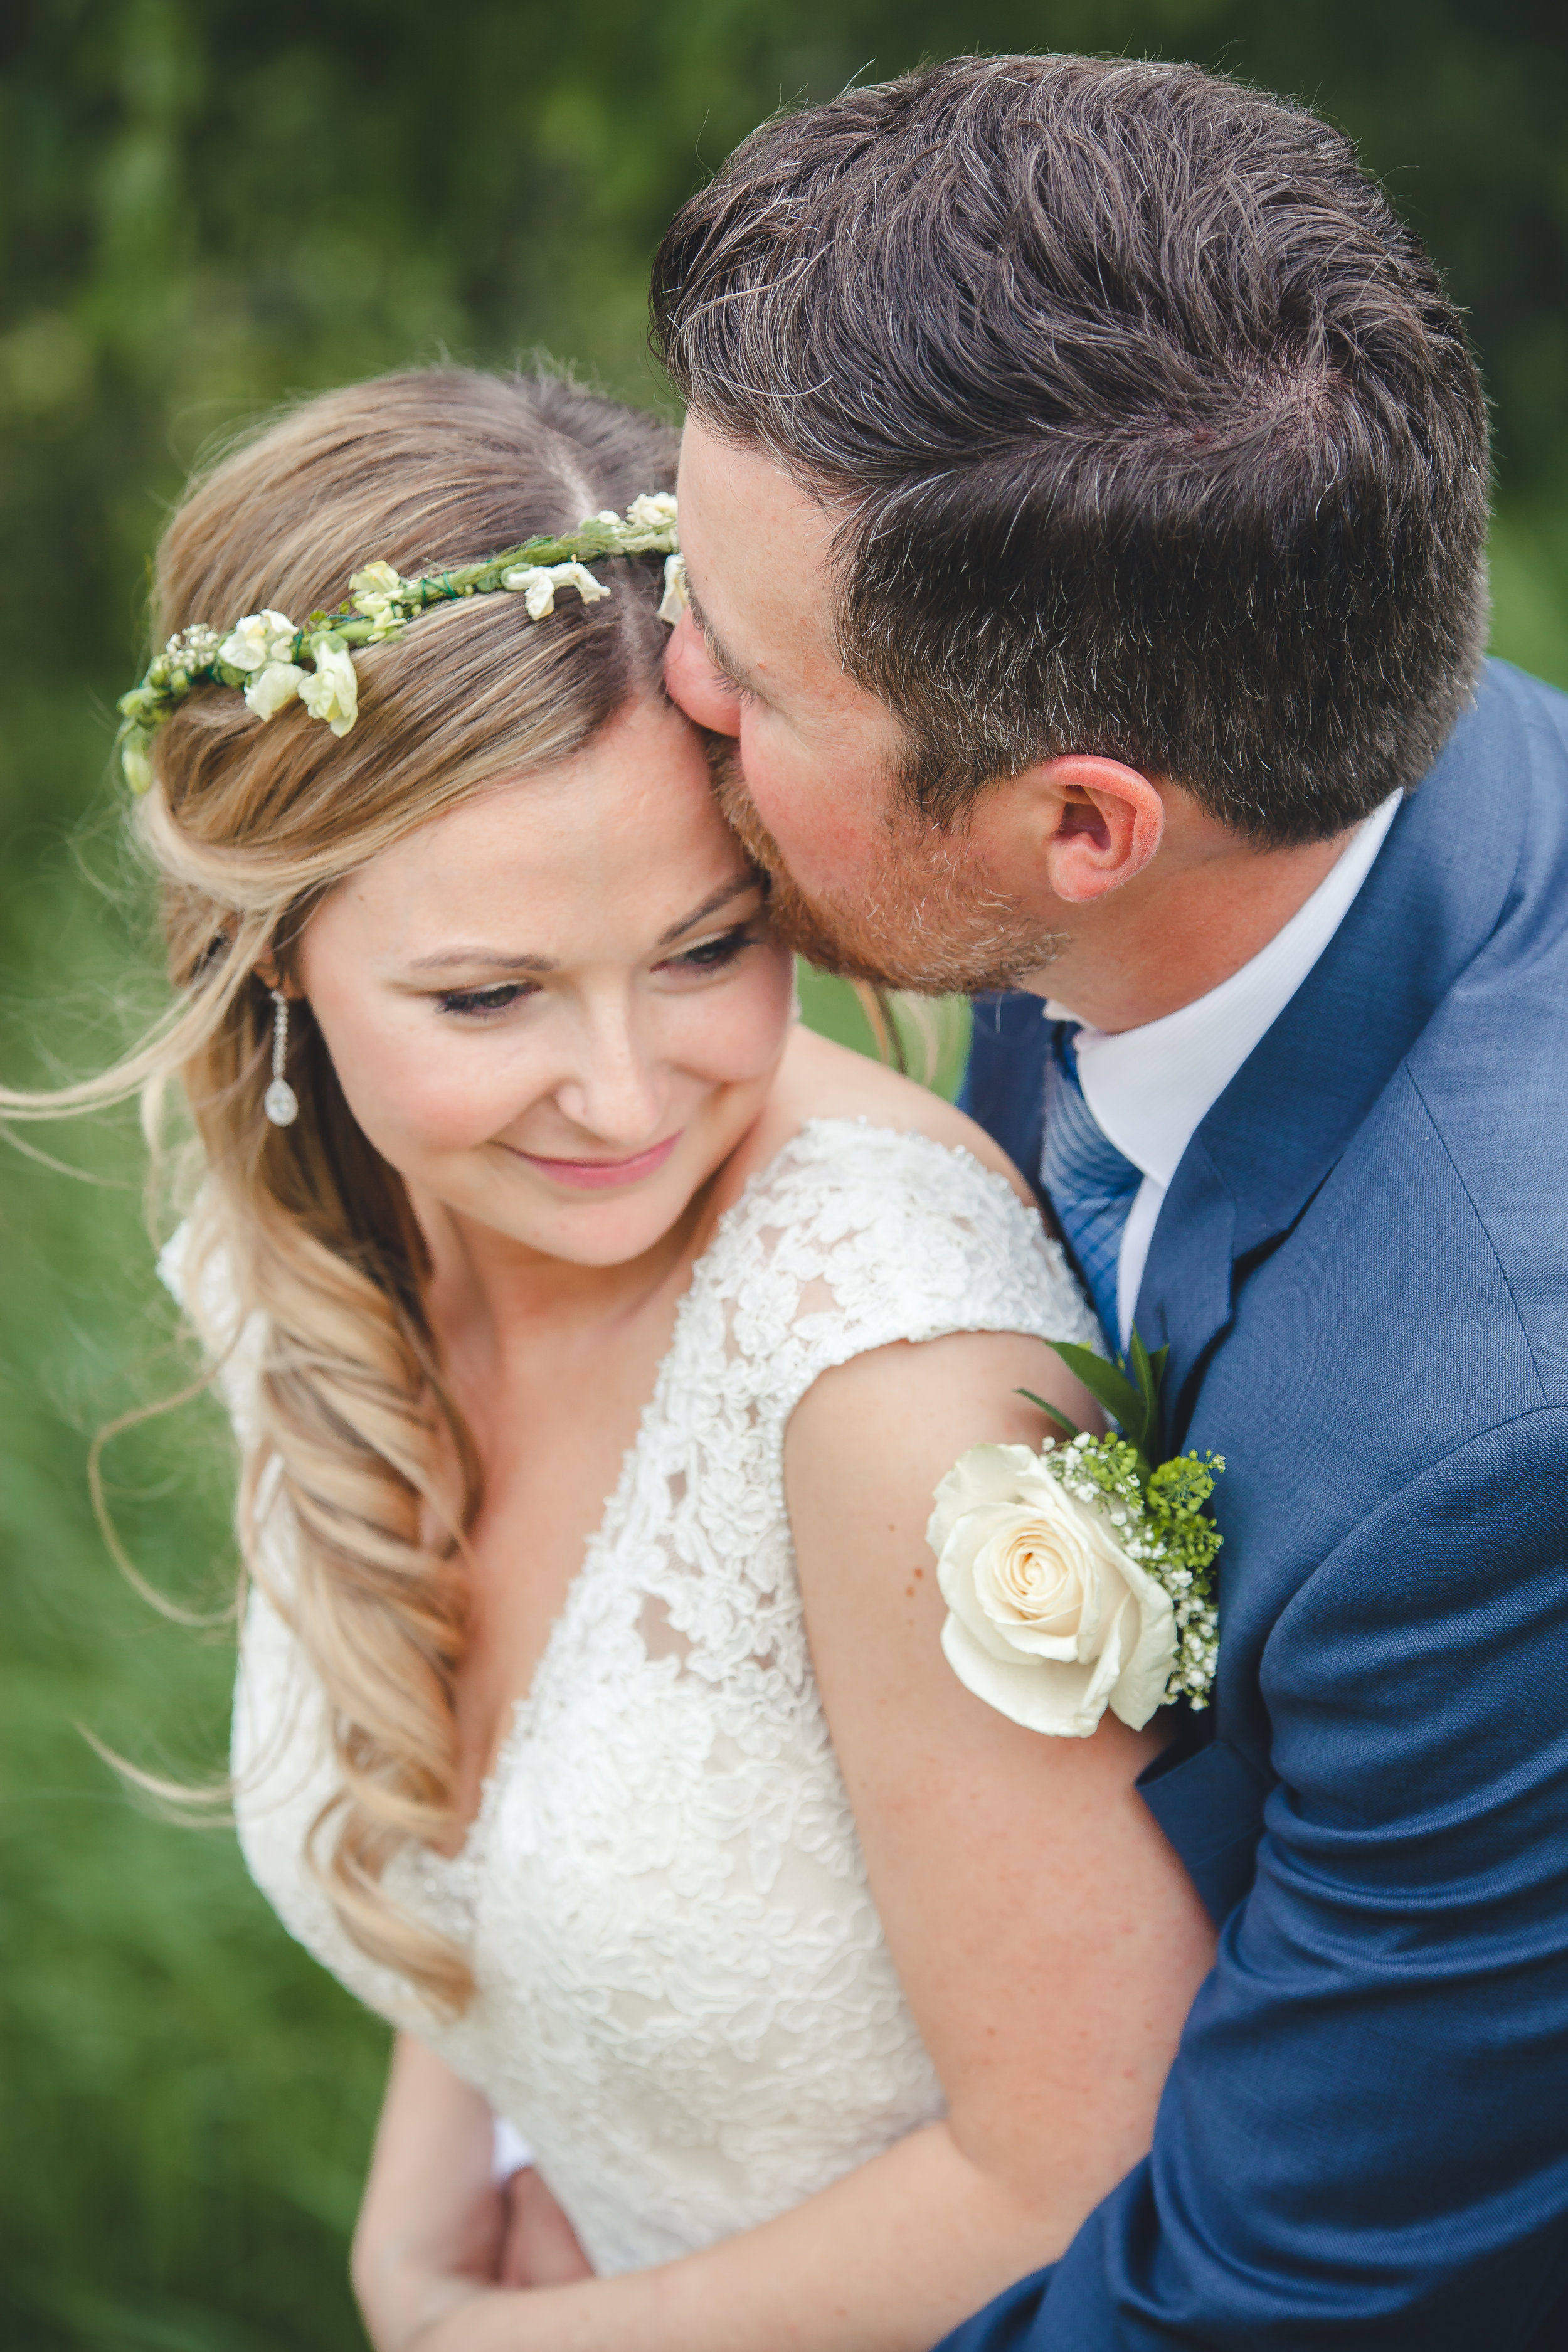 A gorgeous wedding featured in the beauty of the Barrie Country Club, boasting Seagrass & Champagne colors throughout. What an incredible day, filled with so many emotions, teary eyes and smiles.